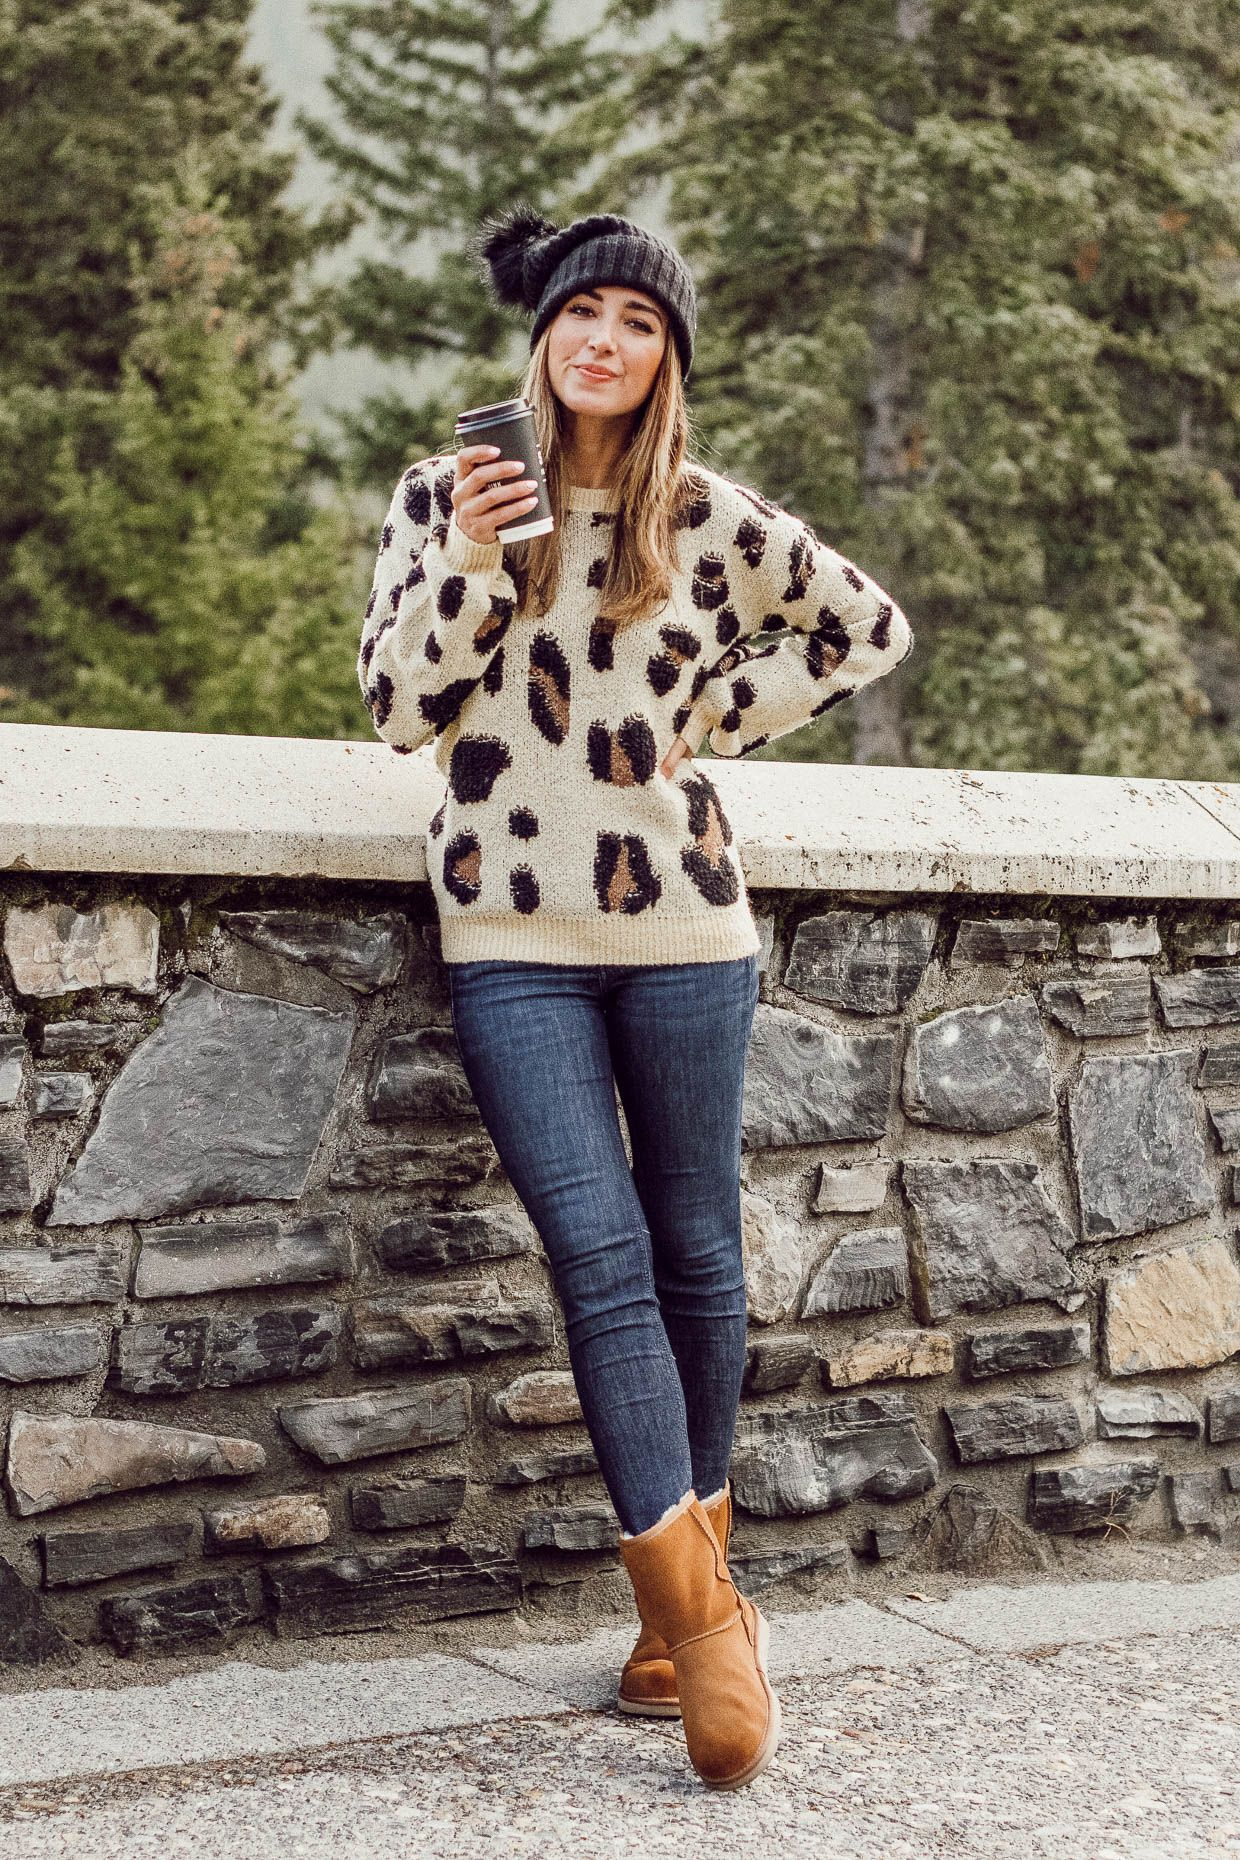 Cute n' Cozy with Koolaburra by UGG | Chic winter outfits ...